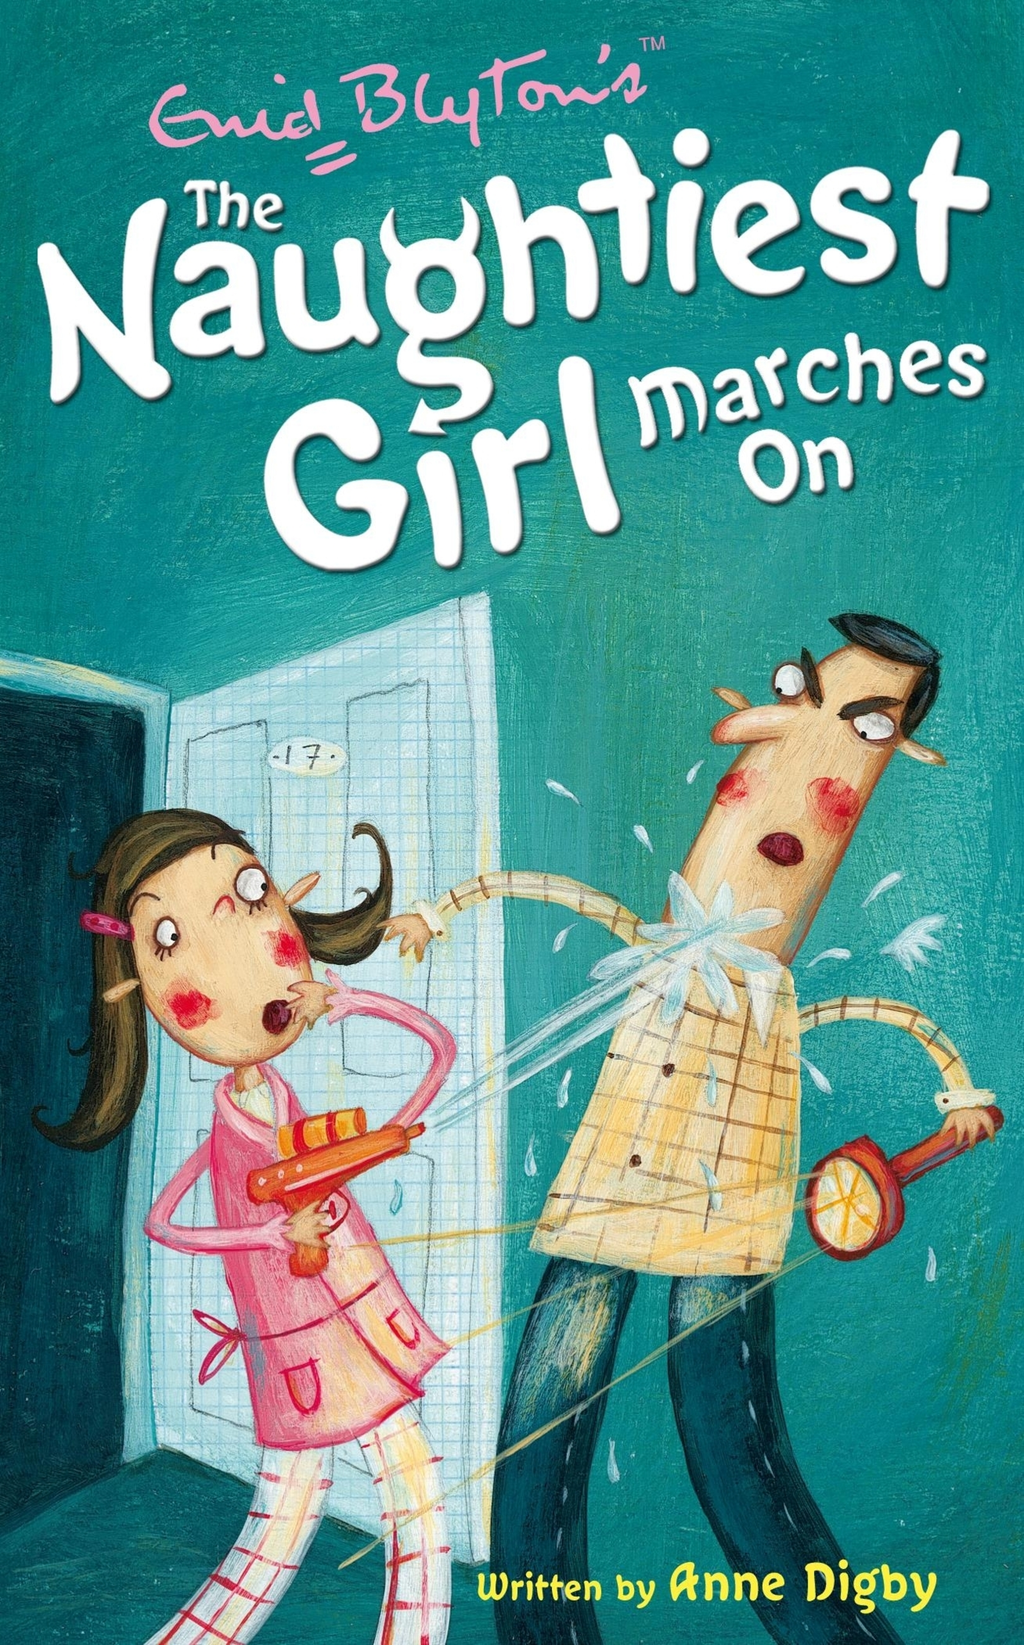 Naughtiest Girl 10: Naughtiest Girl Marches On